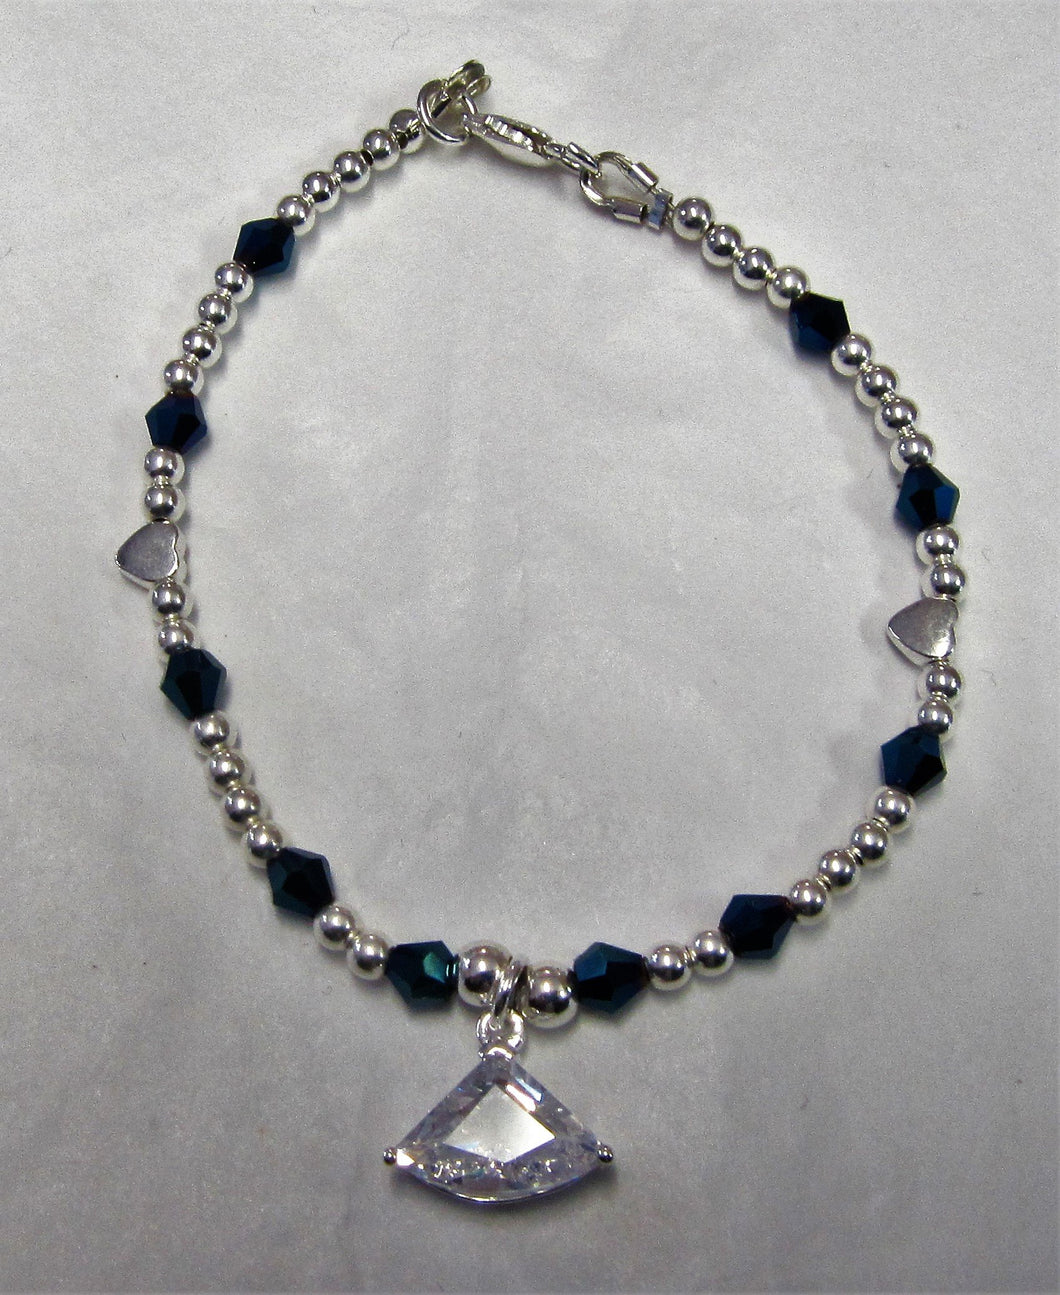 Beautiful handcrafted sterling silver bracelet with swarovski crystal and cubic zirconia drop